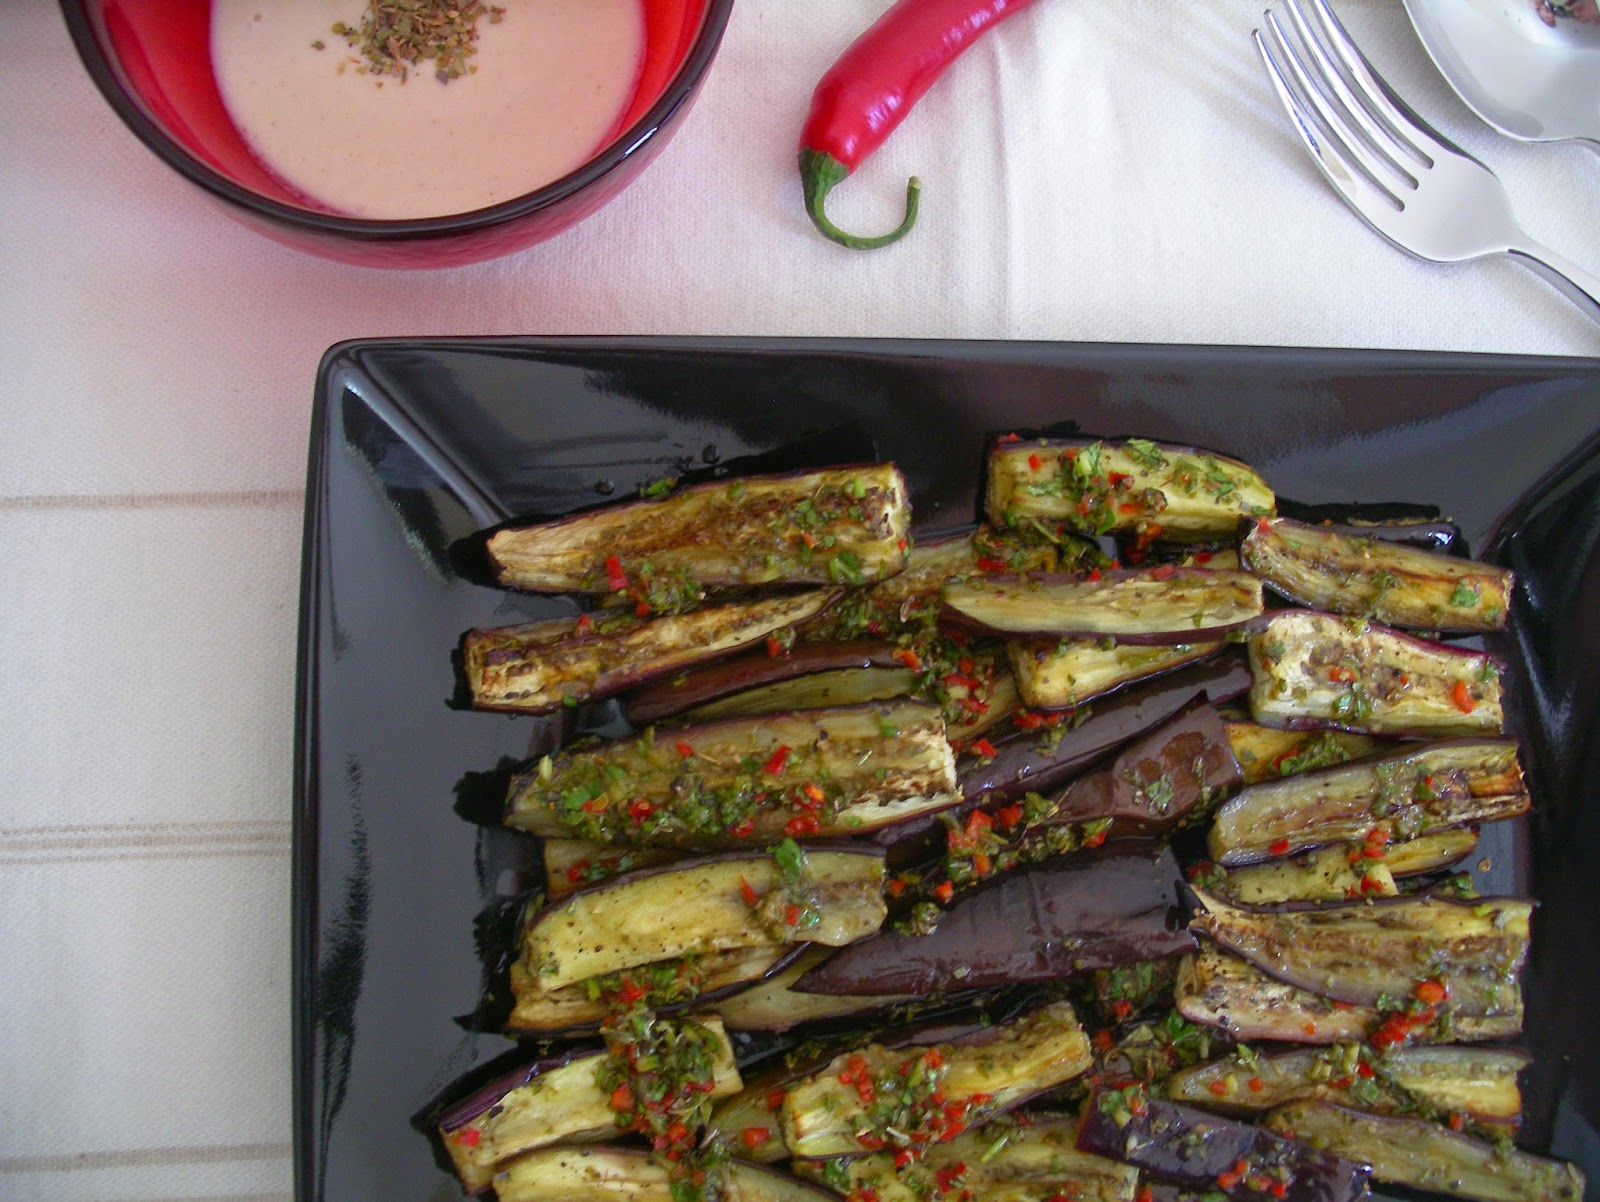 Marinated eggplants with tahini and oregano